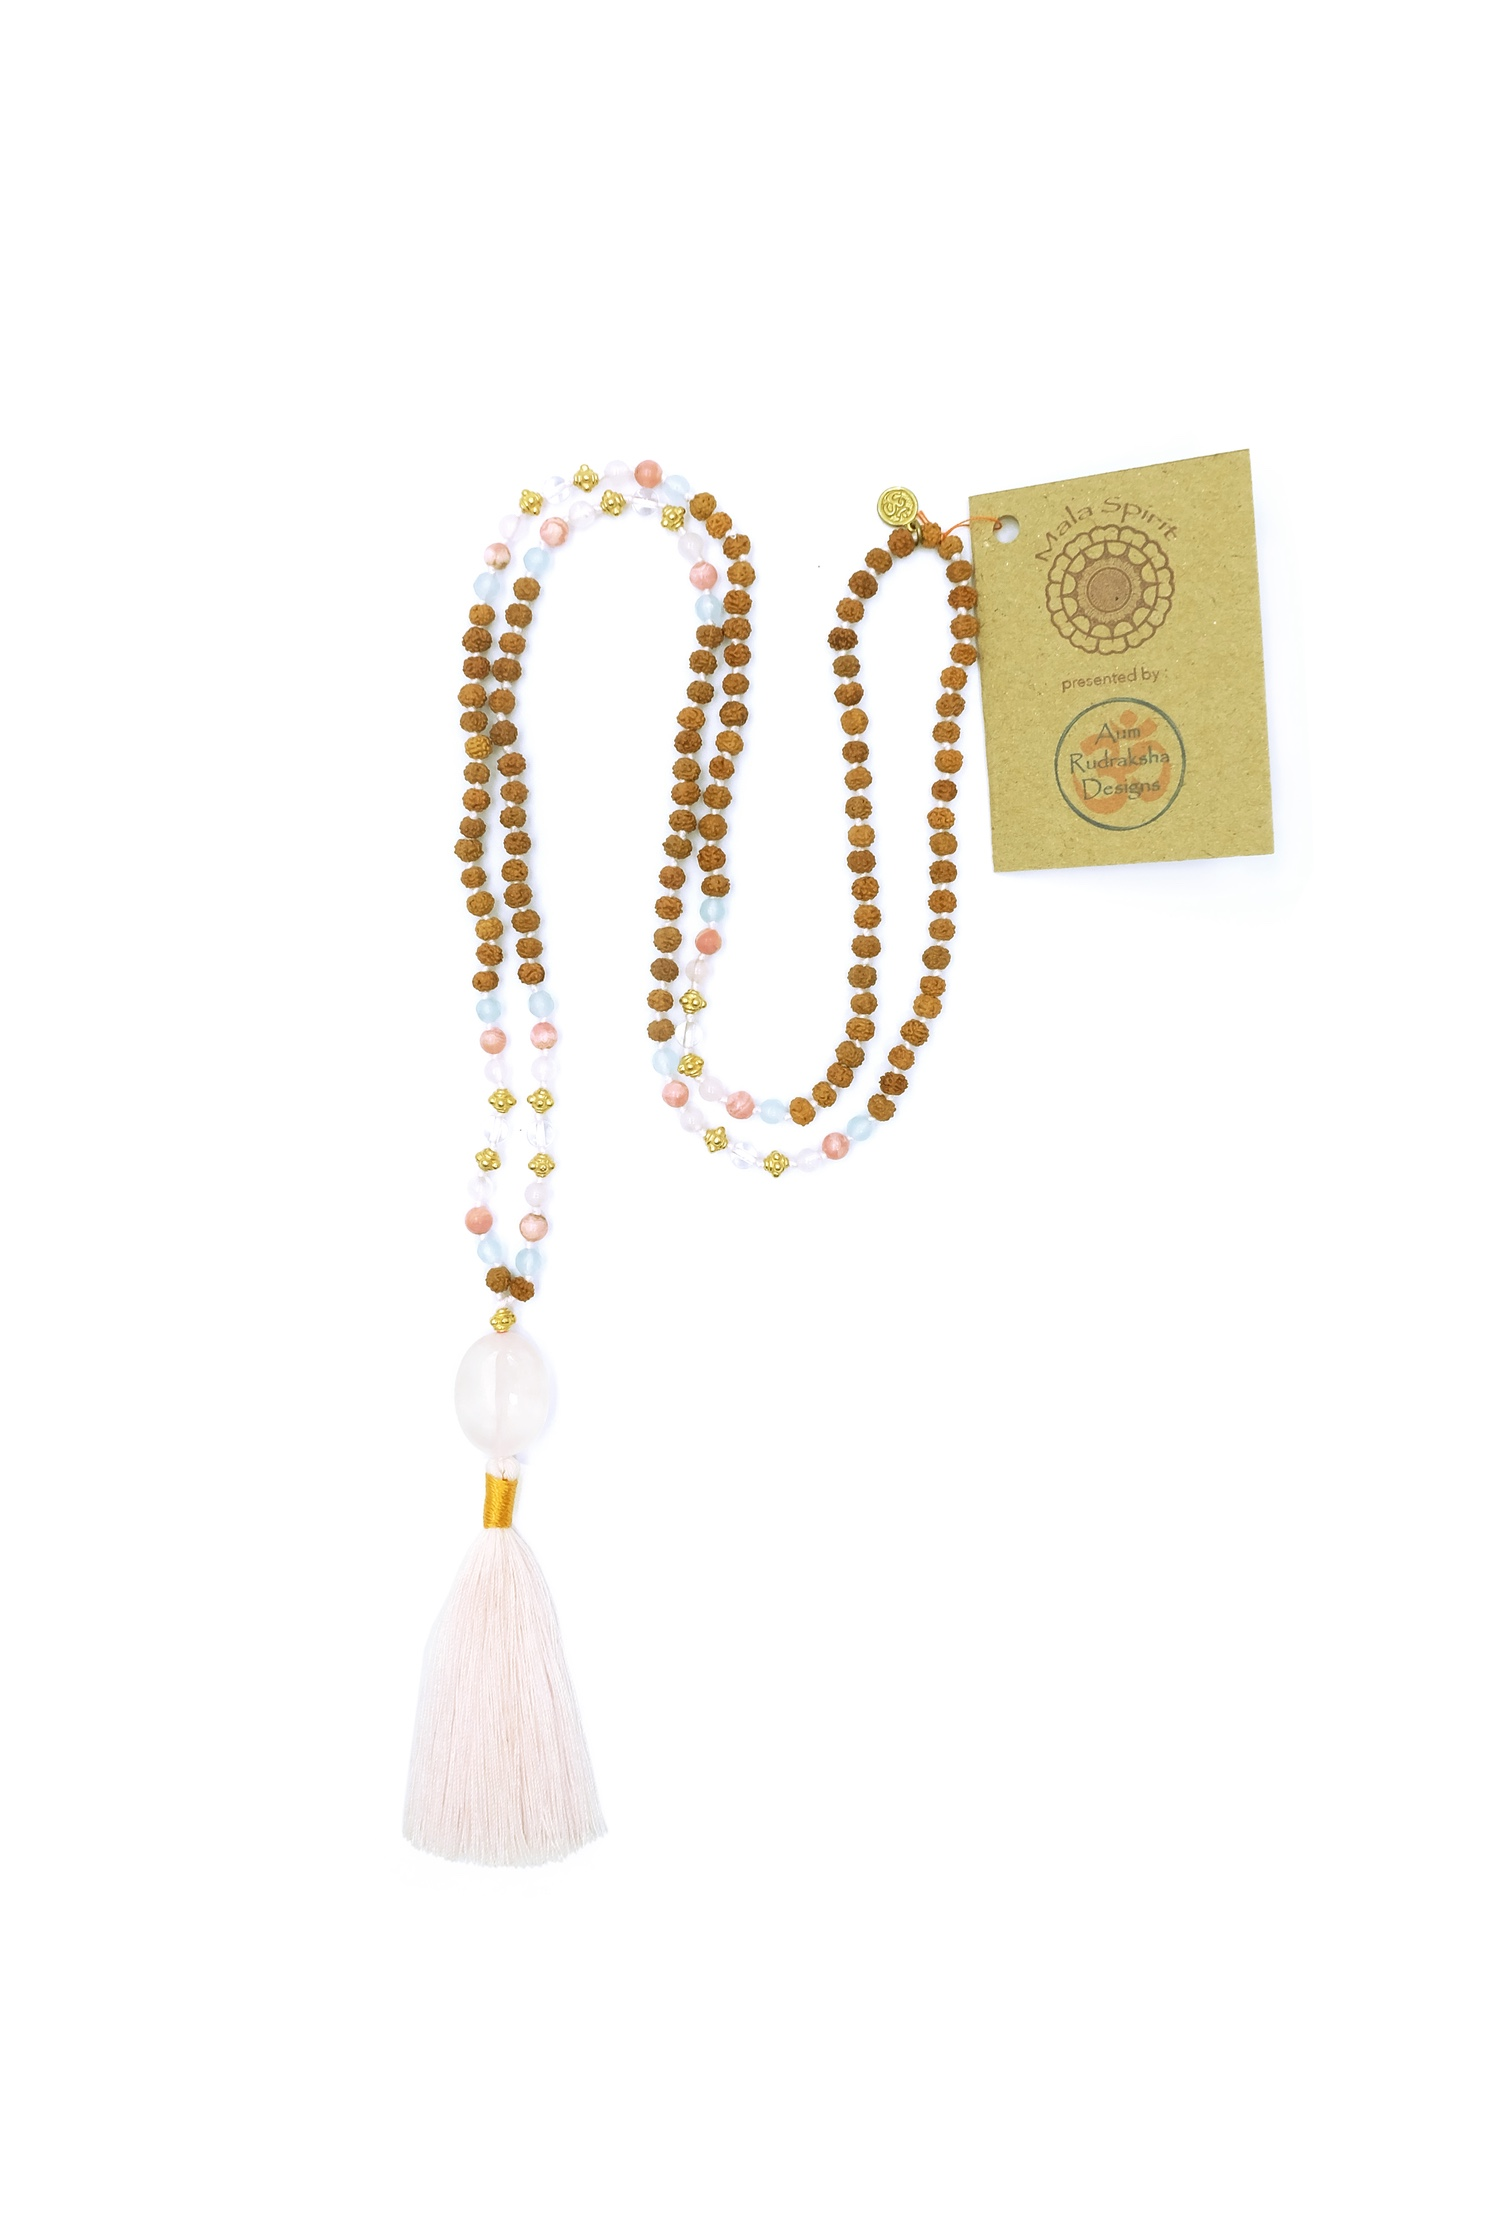 rose-quartz-mala-necklace